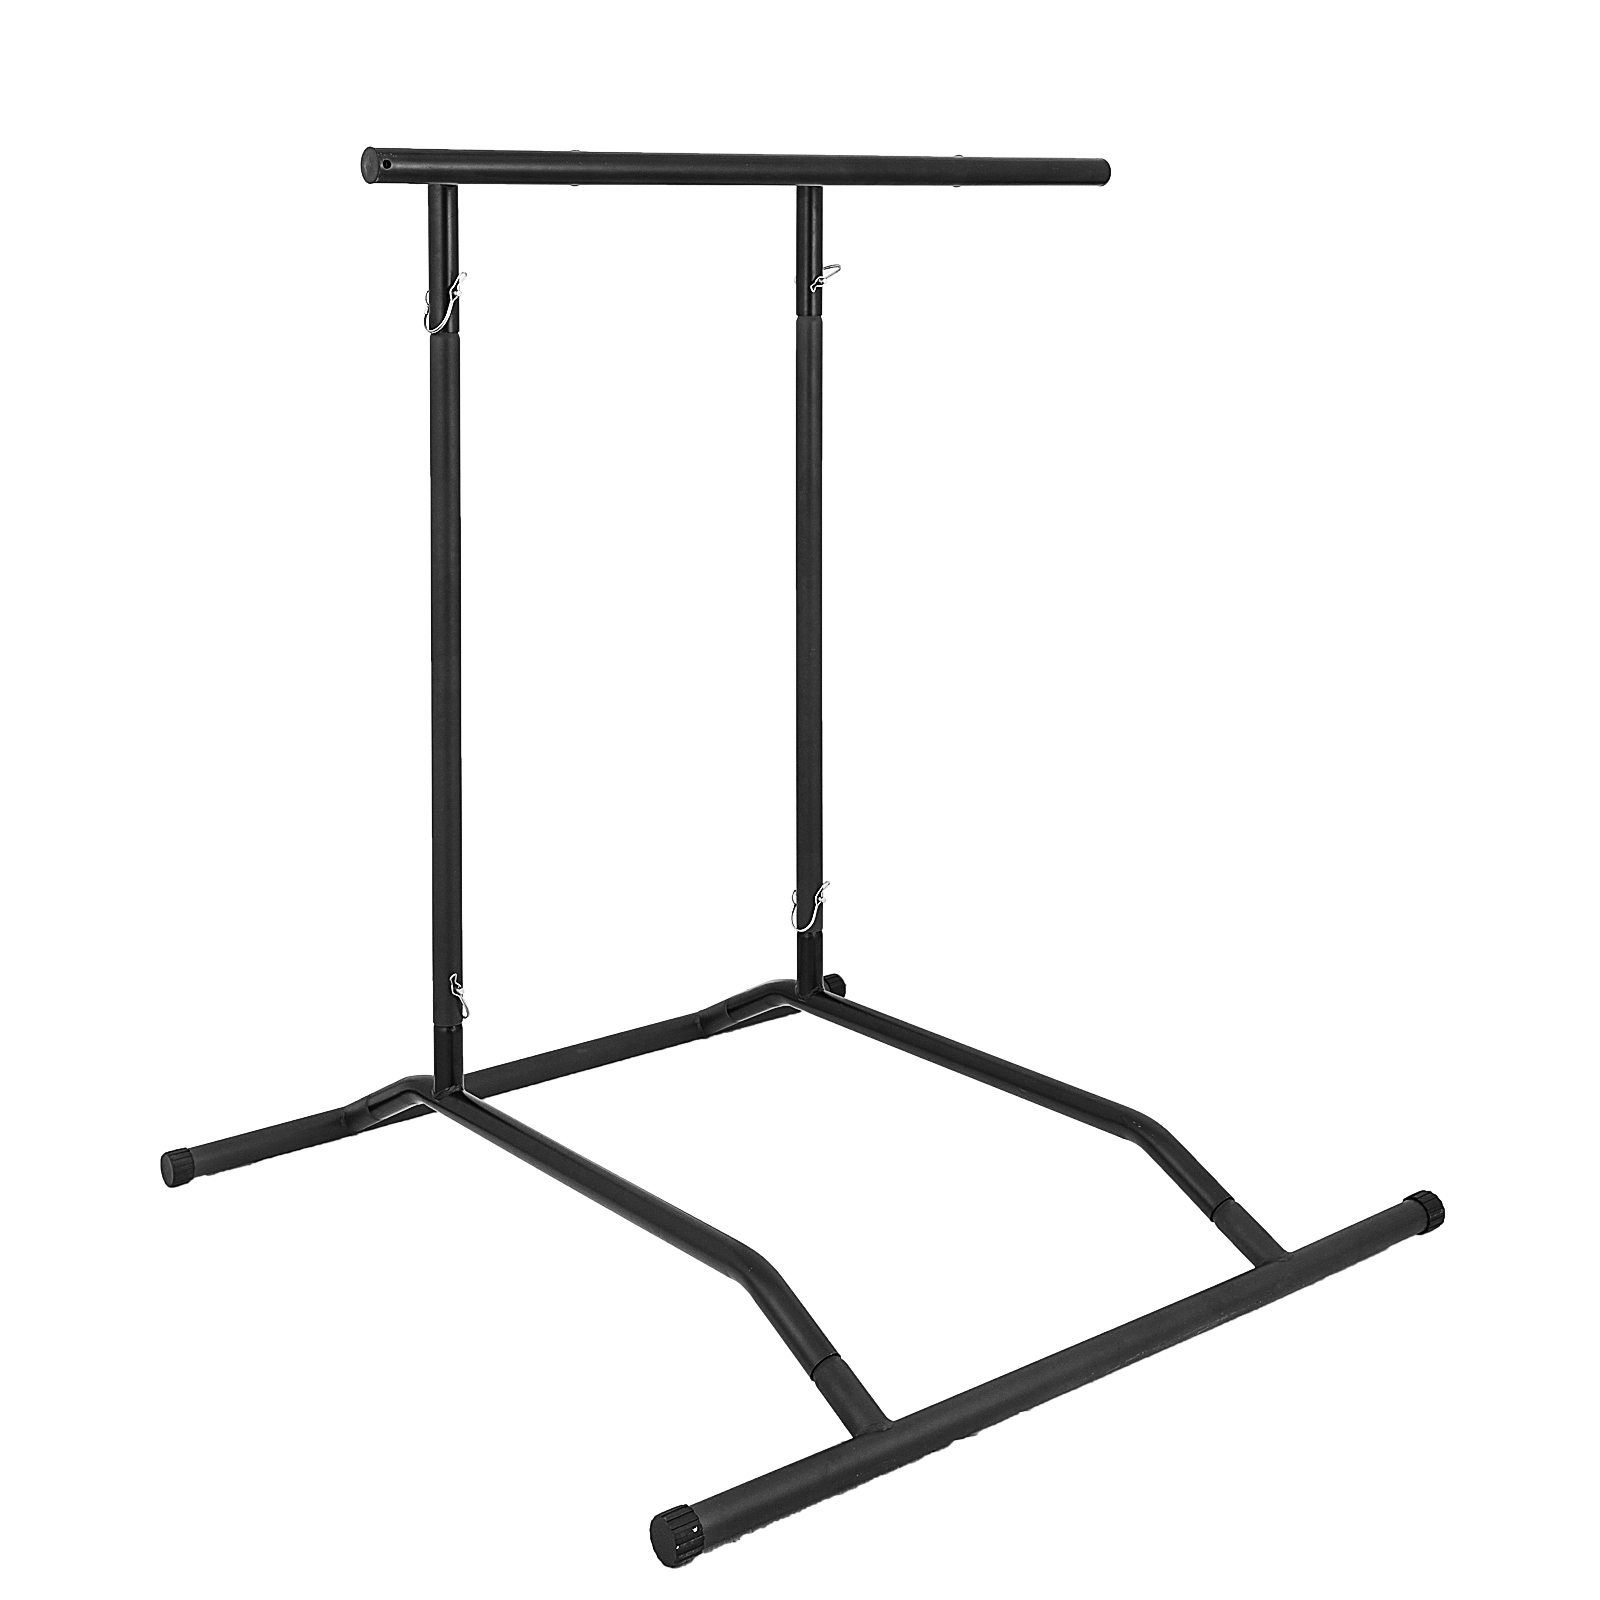 Portable-Power-Tower-for-Home-Gym-Workout-With-Dip-Station-And-Chin-Pull-Up-Bar thumbnail 39